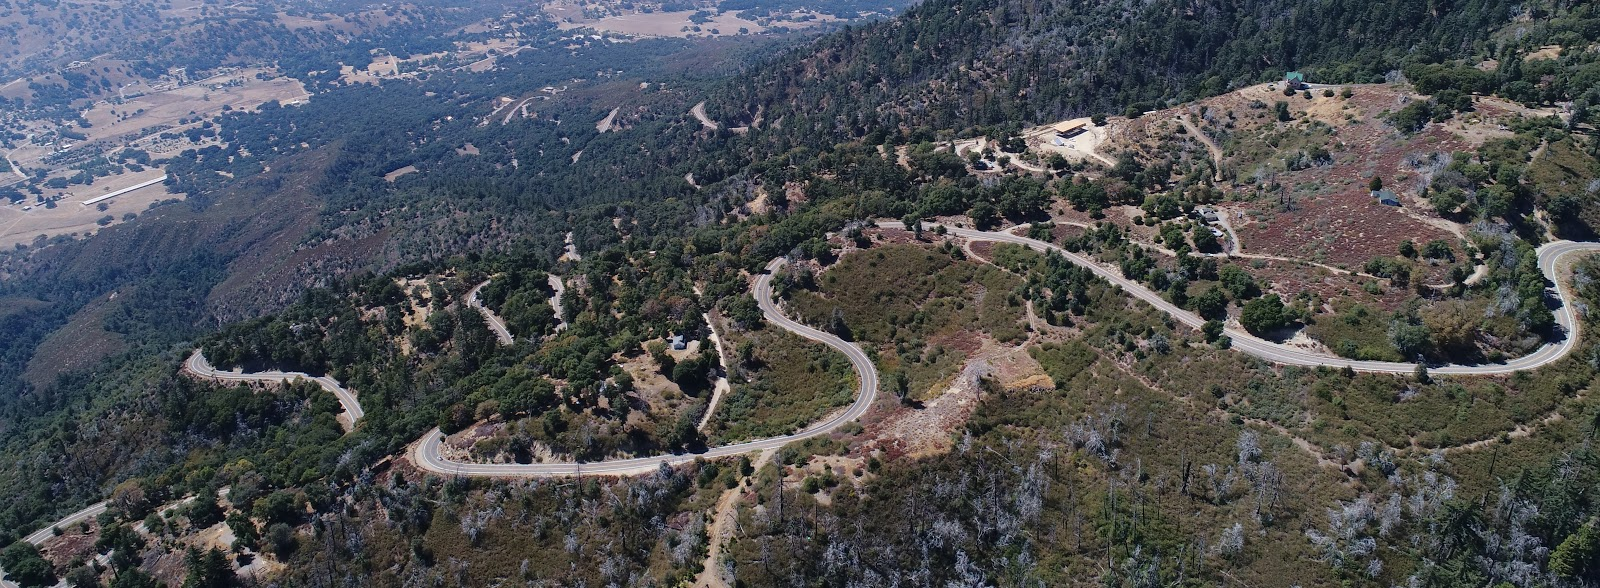 Climbing Palomar Mountain by bike - intersection E Grade and Crestline Road San Diego County